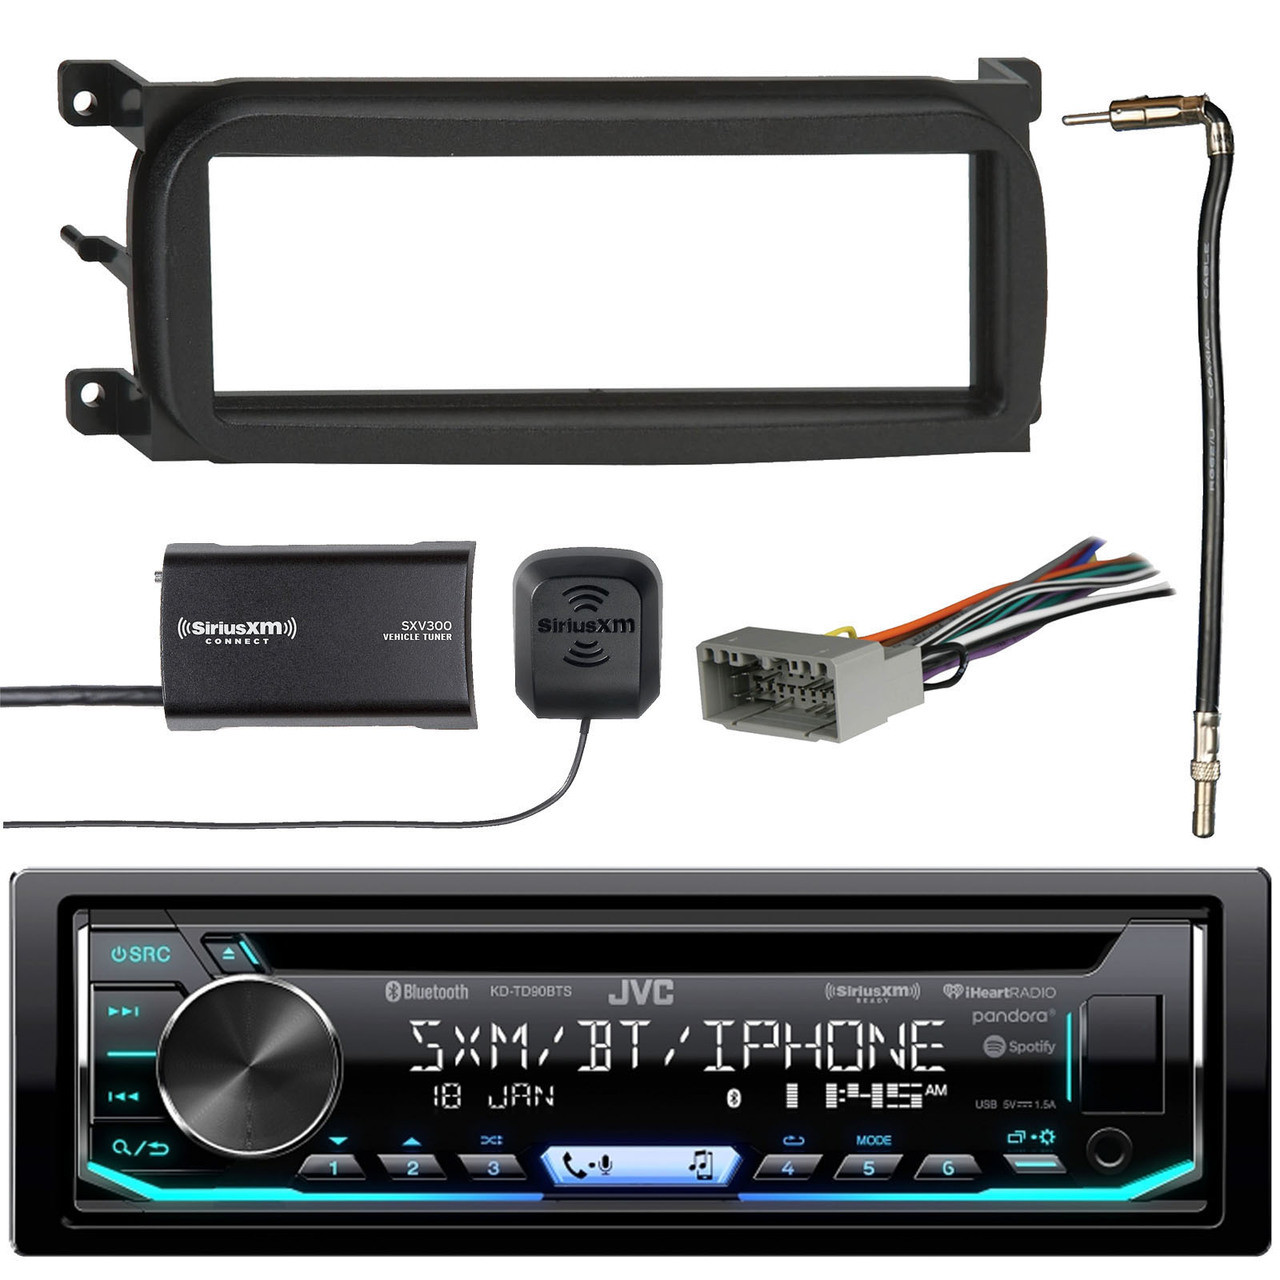 JVC 1-DIN Bluetooth CD/AM/FM Car Stereo with Sirius Radio Tuner, Metra on jvc wiring harness color coating, jvc steering wheel adapter, 7-way trailer wiring adapter, jvc kd r300 wiring harness, jvc kd r210 wiring-diagram, jvc kd s26 wiring harness, jvc headunit wiring-diagram, jvc wiring harness diagram,